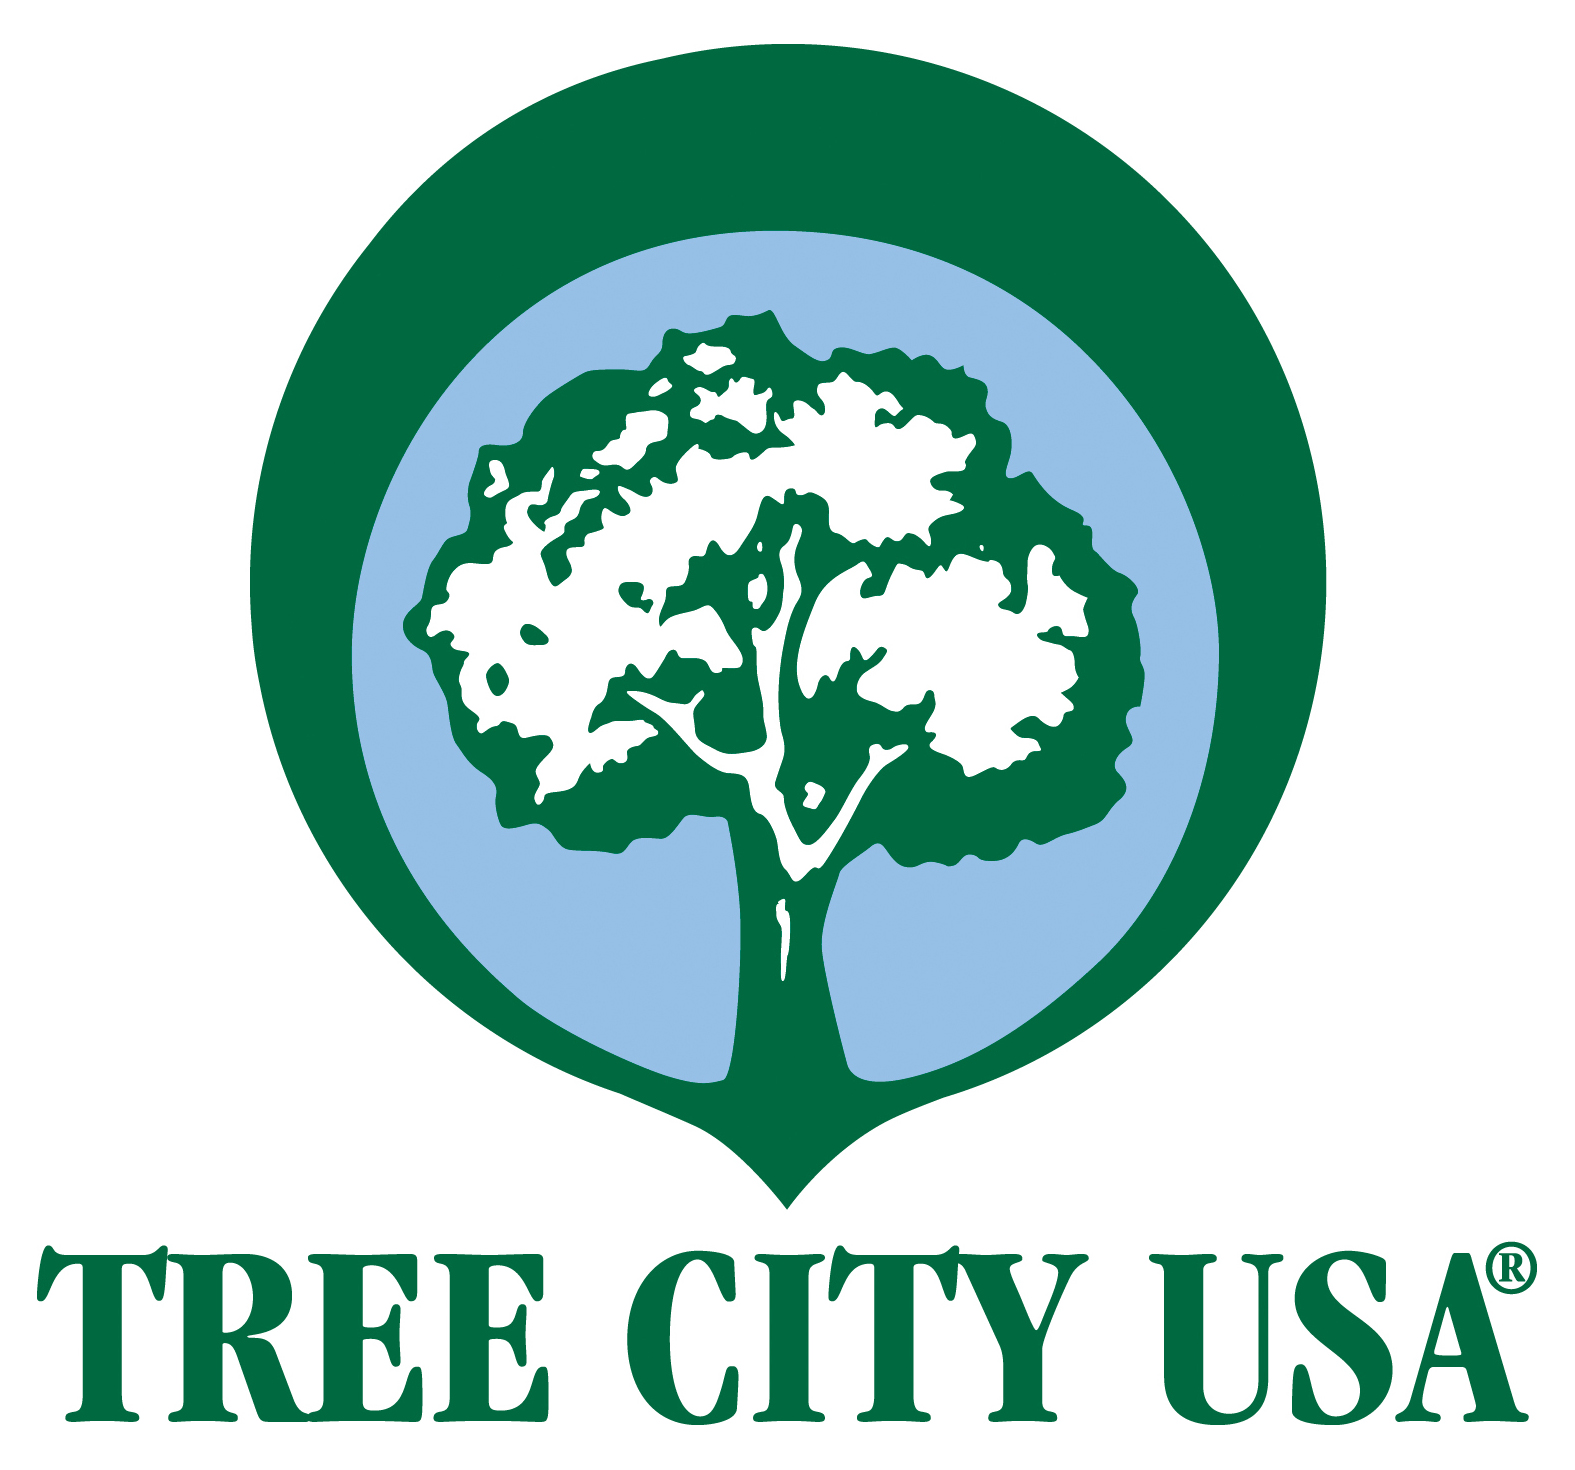 LOGO FOR TREE CITY USA PROGRAM.  GREEN AND BLUE CONCENTRIC CIRCLES WITH A GREEN OUTLINE OF A TREE INSIDE